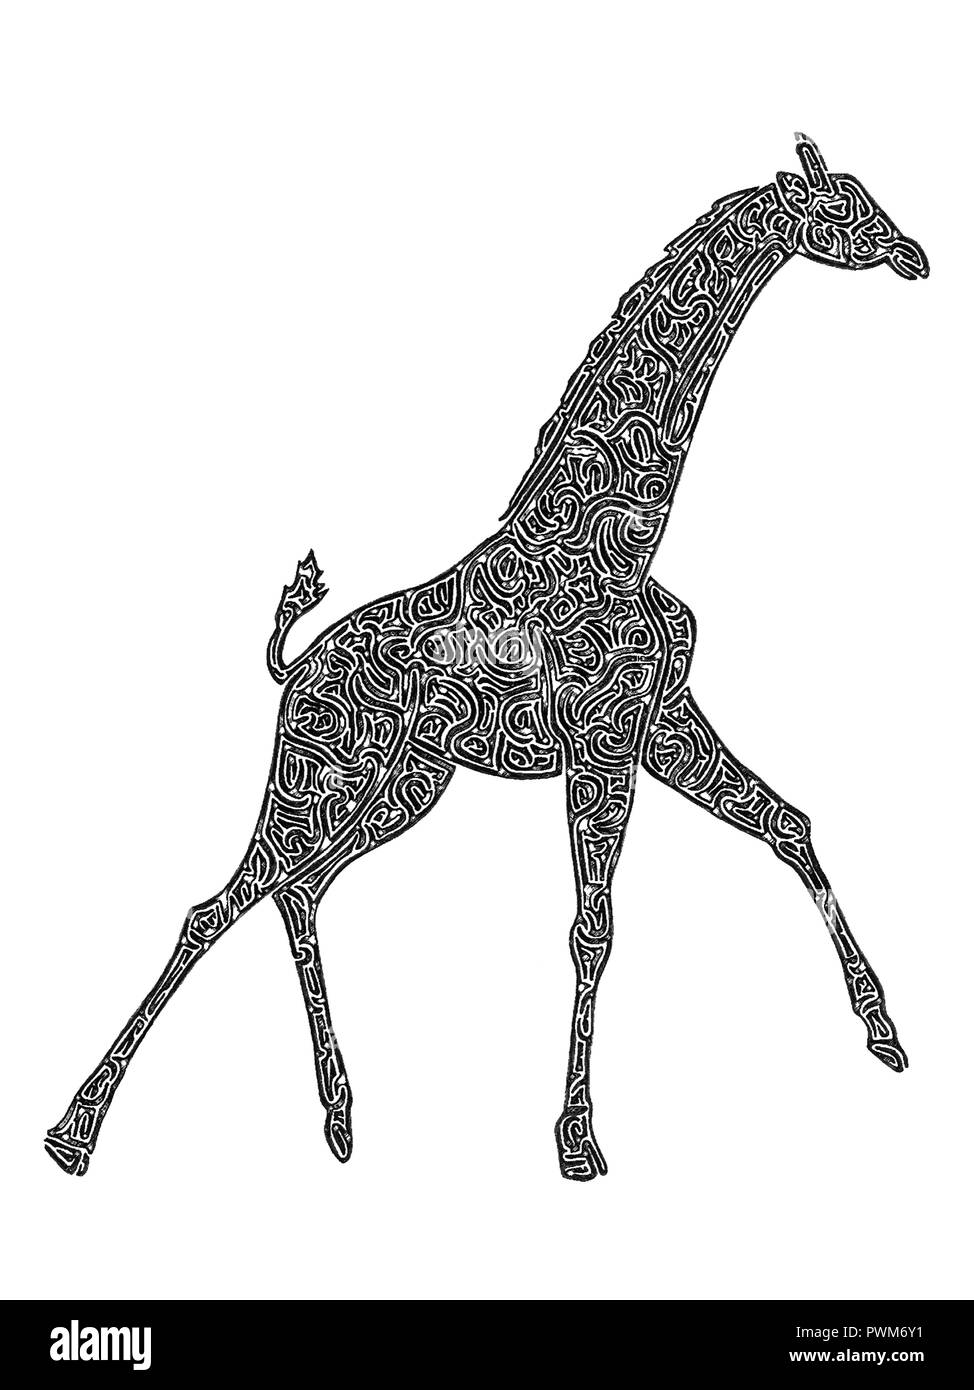 Illustration of a giraffe running, black and white, drawing, maze lines Stock Photo